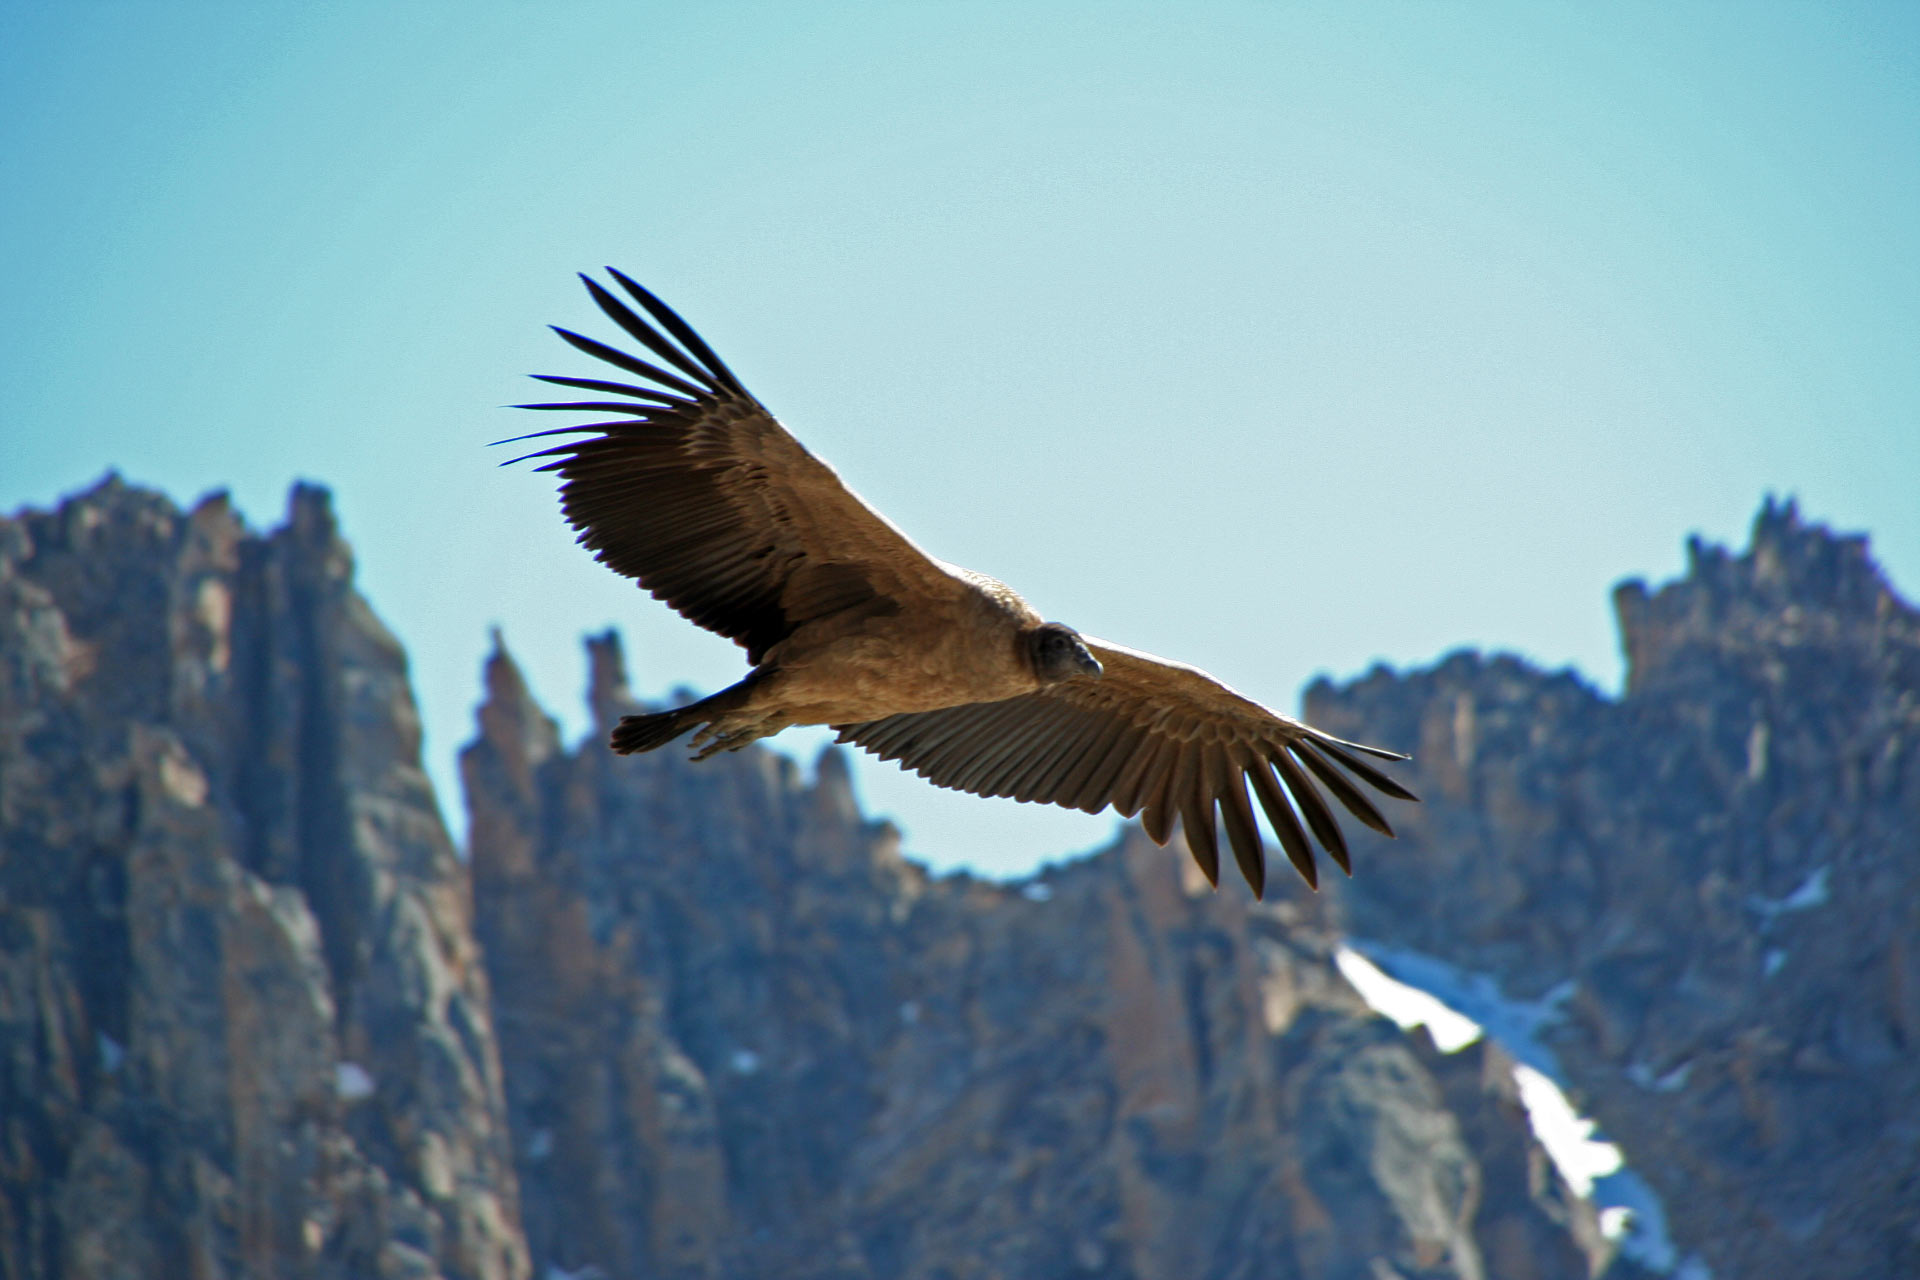 World S Heaviest Soaring Bird Flaps Wings For Only 1 Of Flight Time Biology Sci News Com